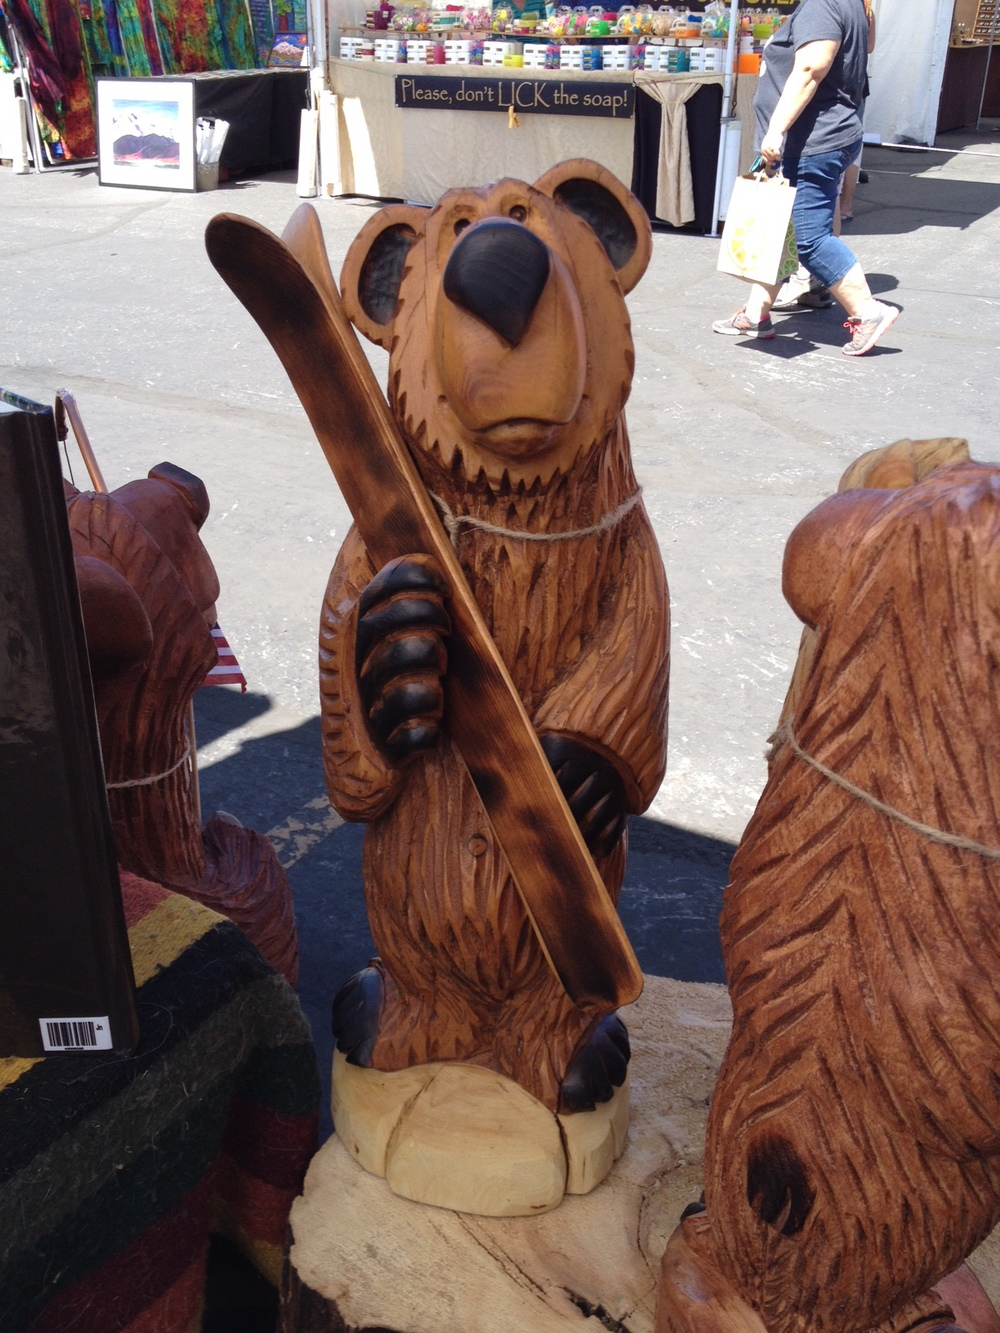 Bear holding skis